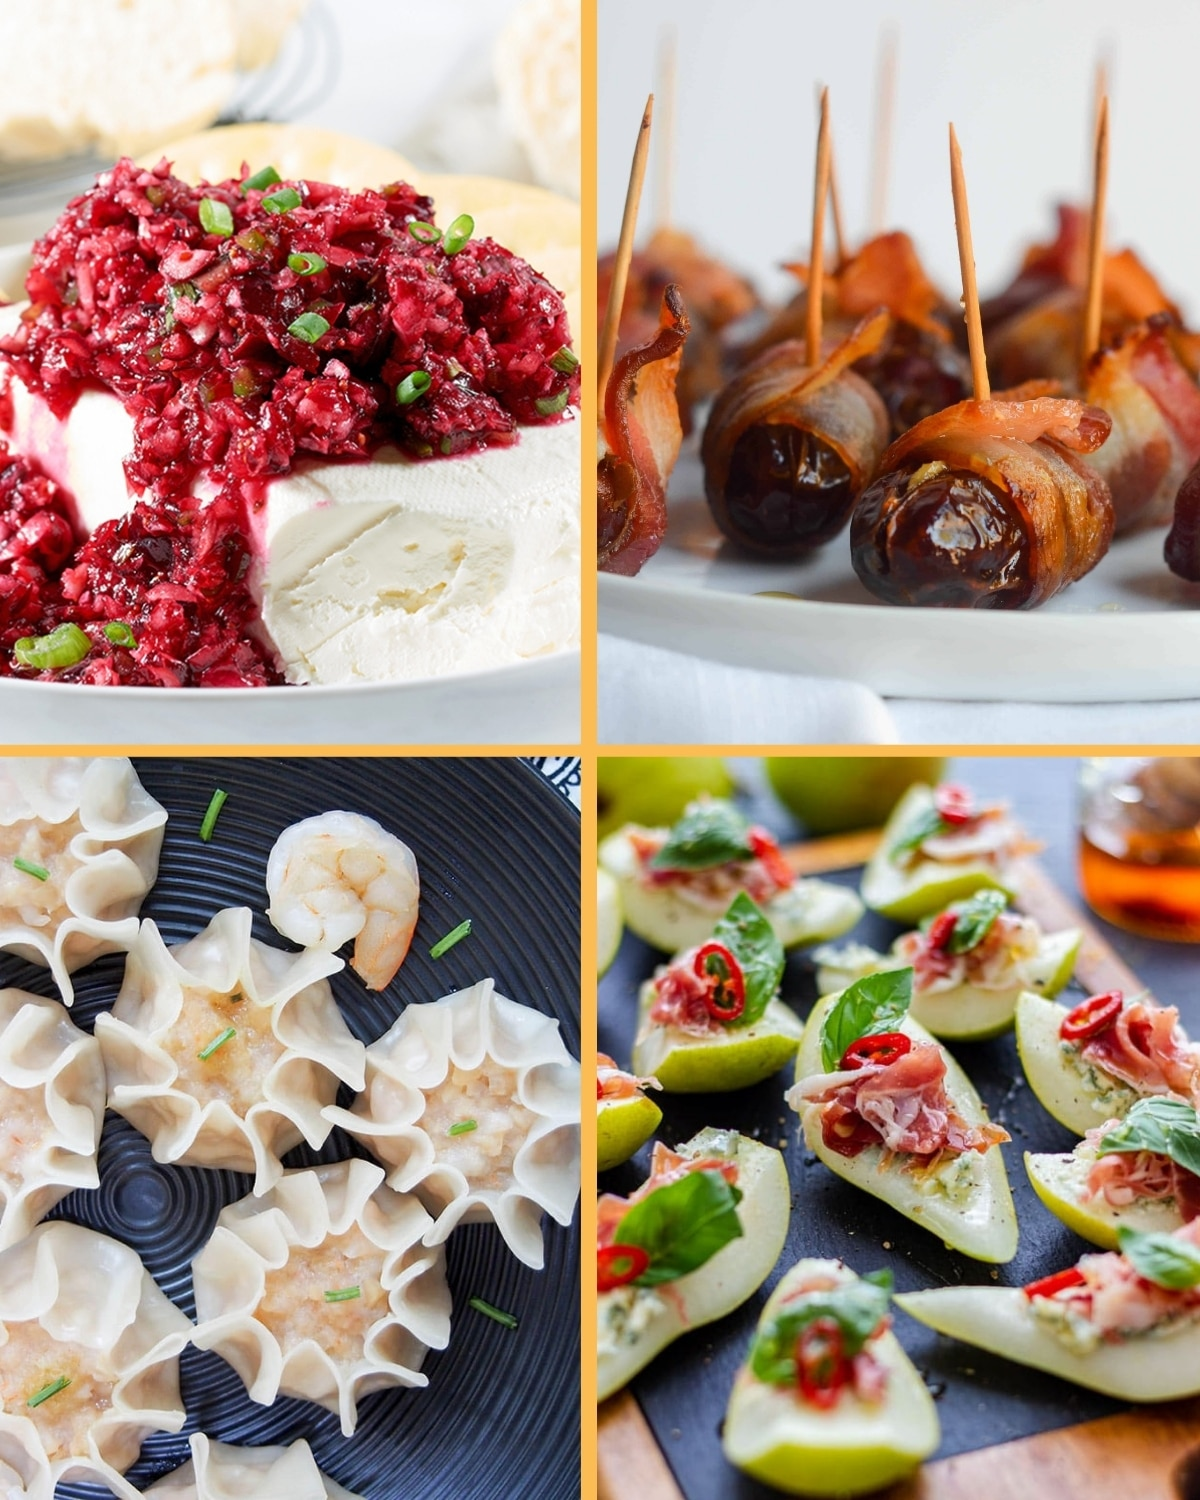 A grid of 4 elegant appetizers, incuding jalapeno cranberry spread, bacon wrapped dates, shrimp shumai, and proscuitto pears.